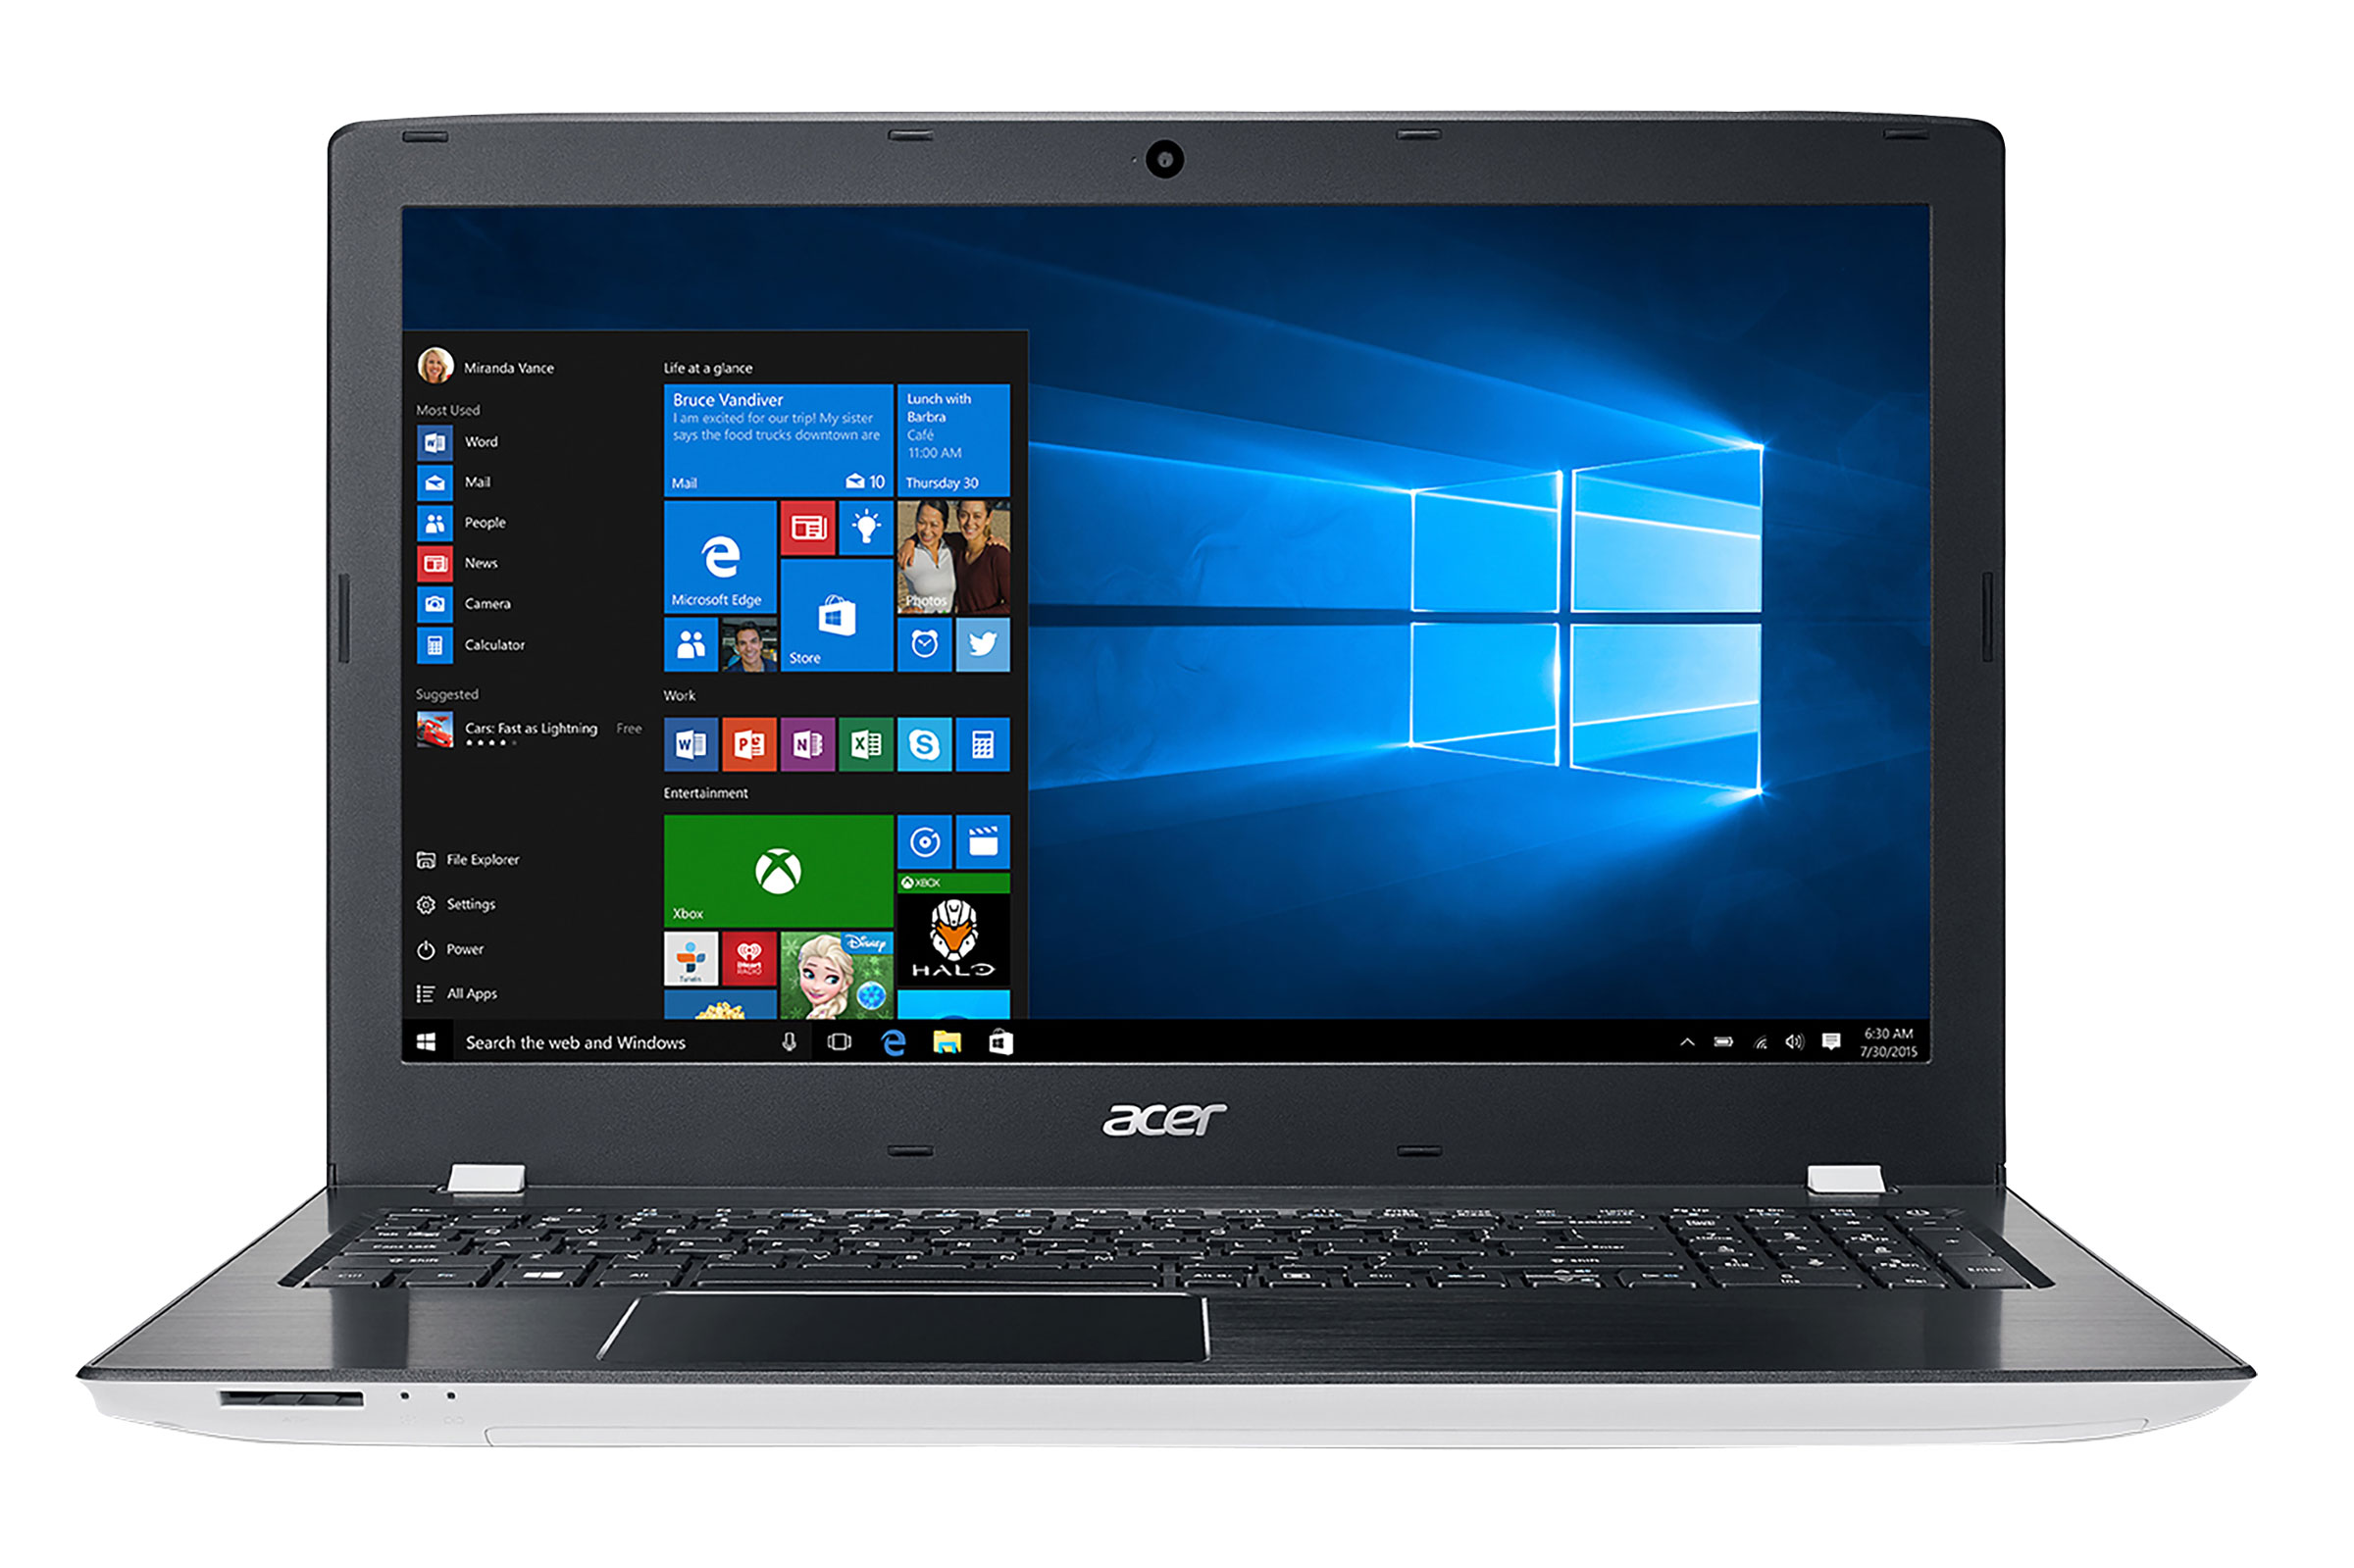 Acer Aspire ES 15 E5575516N  Intel Core 1TB HDD 8GB RAM 156 Notebook